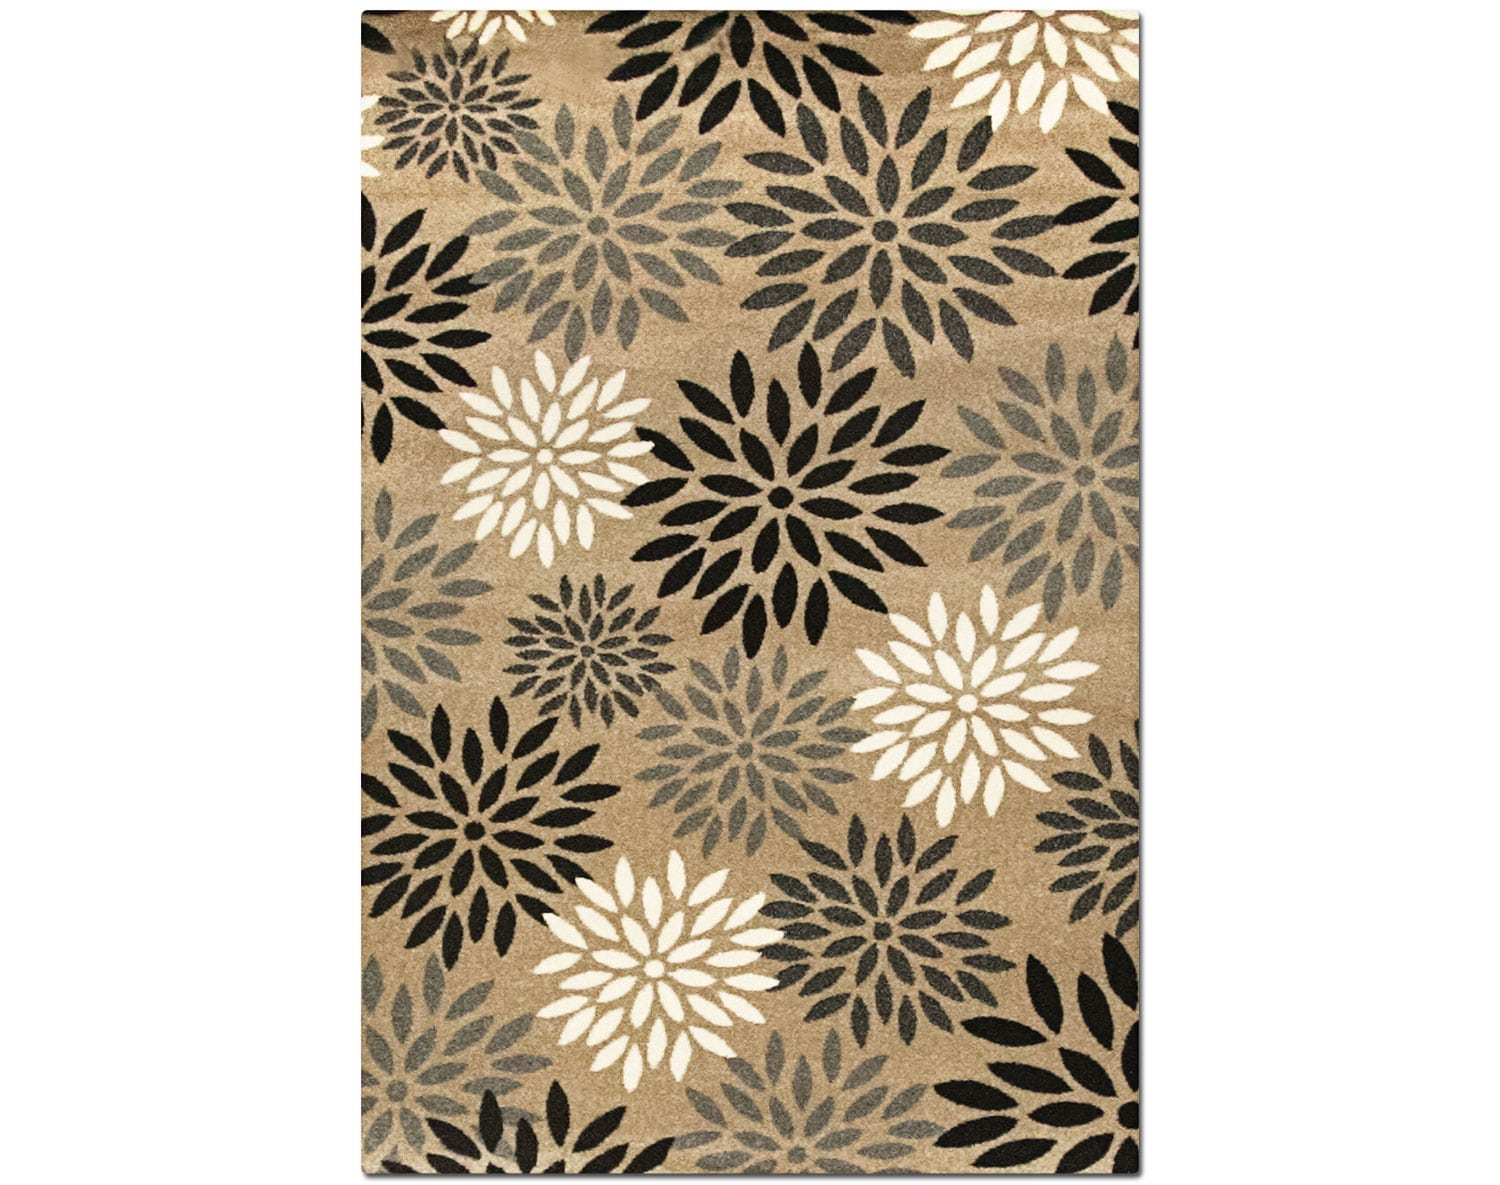 The Casa Collection - Tan and Black